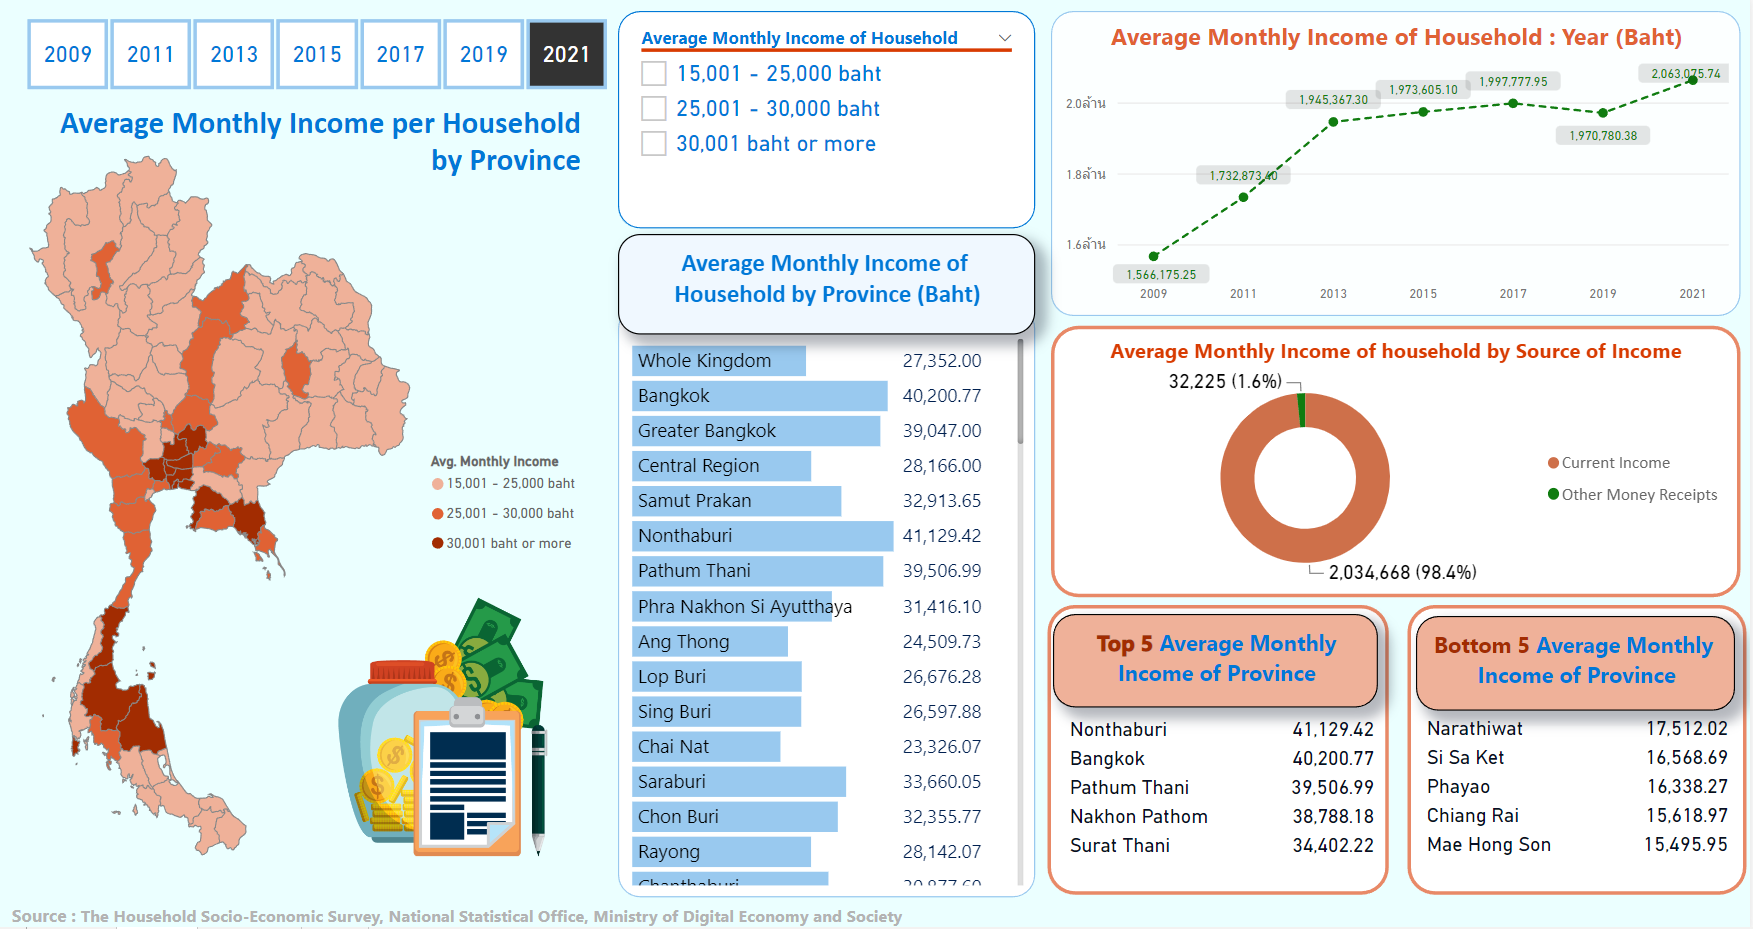 AVERAGE MONTHLY INCOME PER HOUSEHOLD